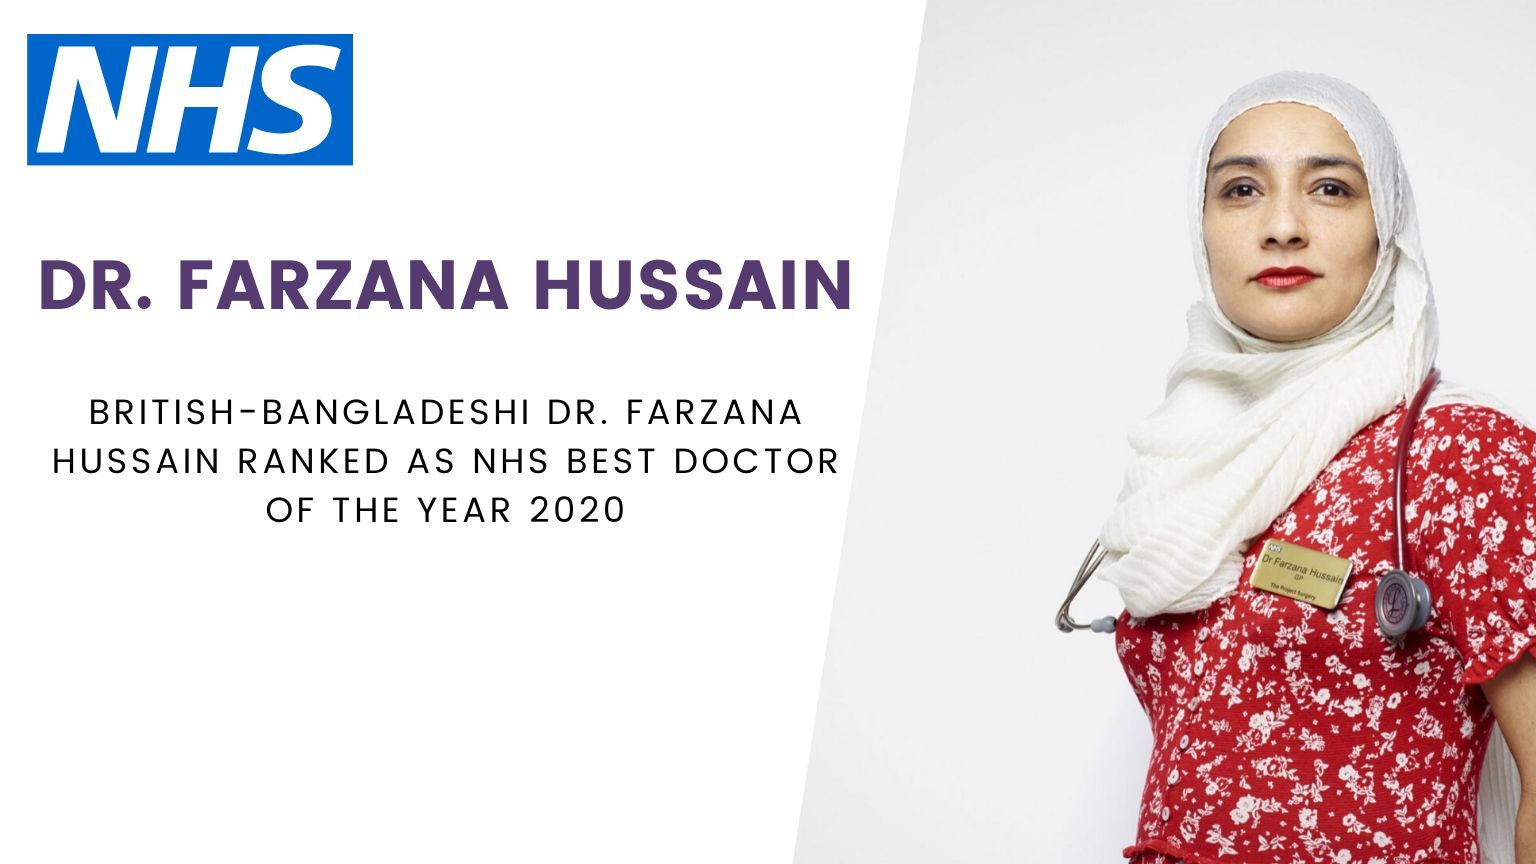 British-Bangladeshi Dr. Farzana Hussain Ranked as NHS Best Doctor of the Year 2020